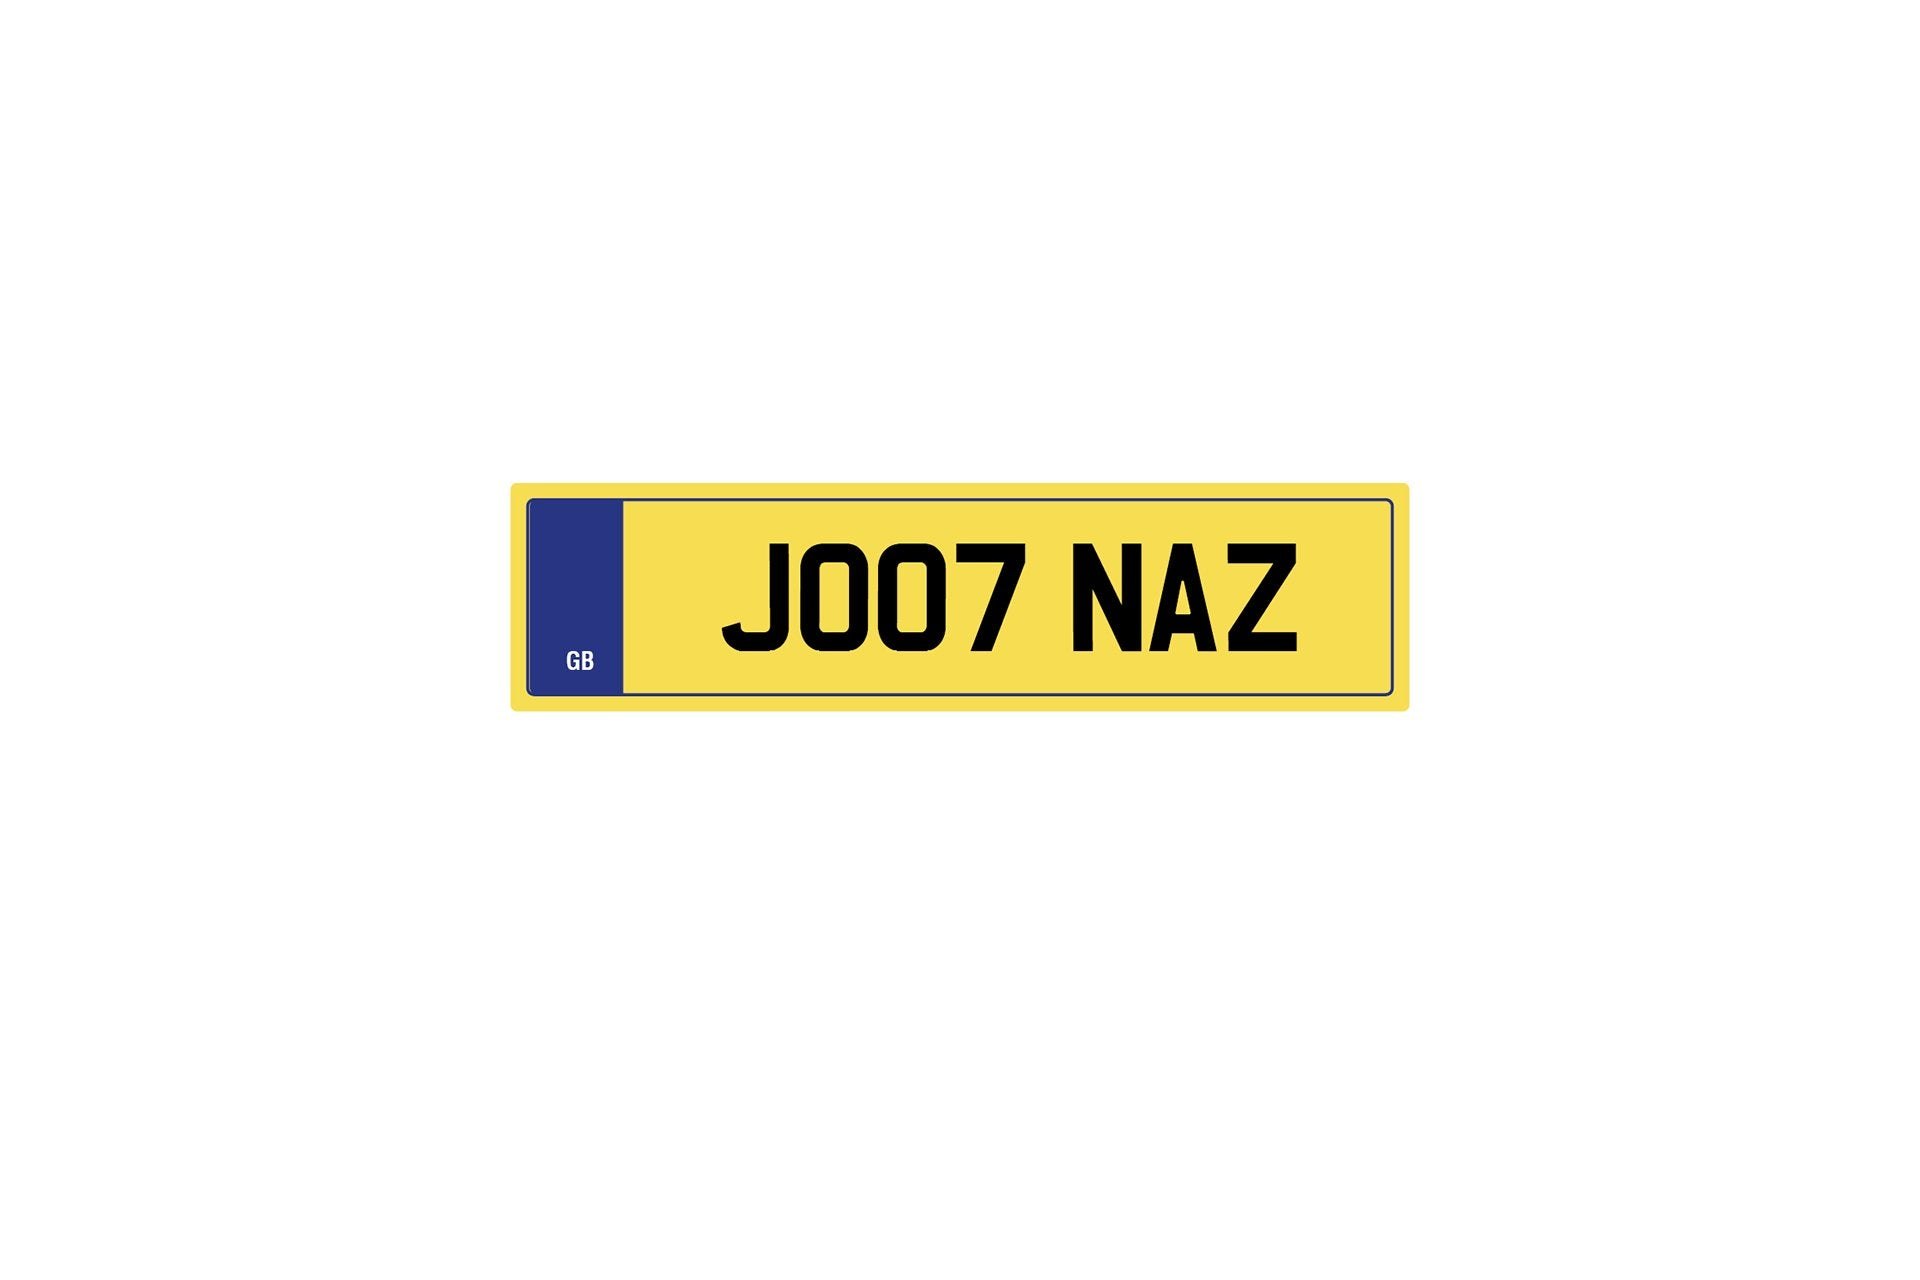 Private Plate J007 Naz by Kahn - Image 205